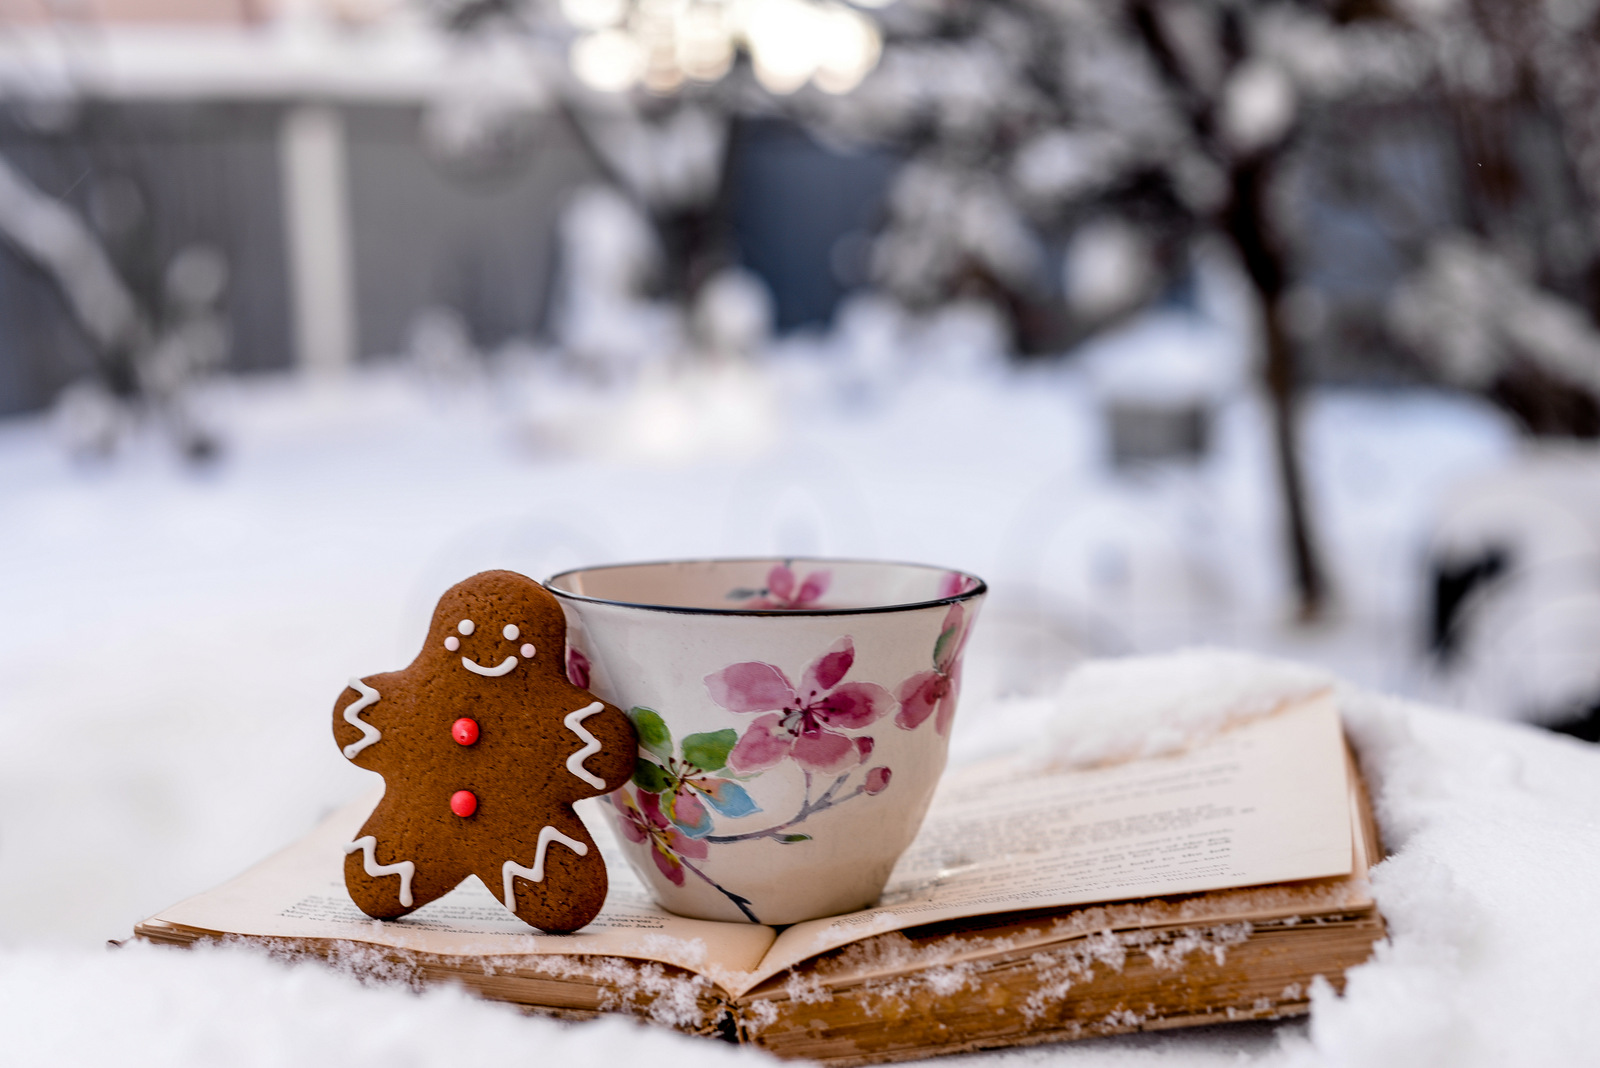 tea and gingerbread in the snow